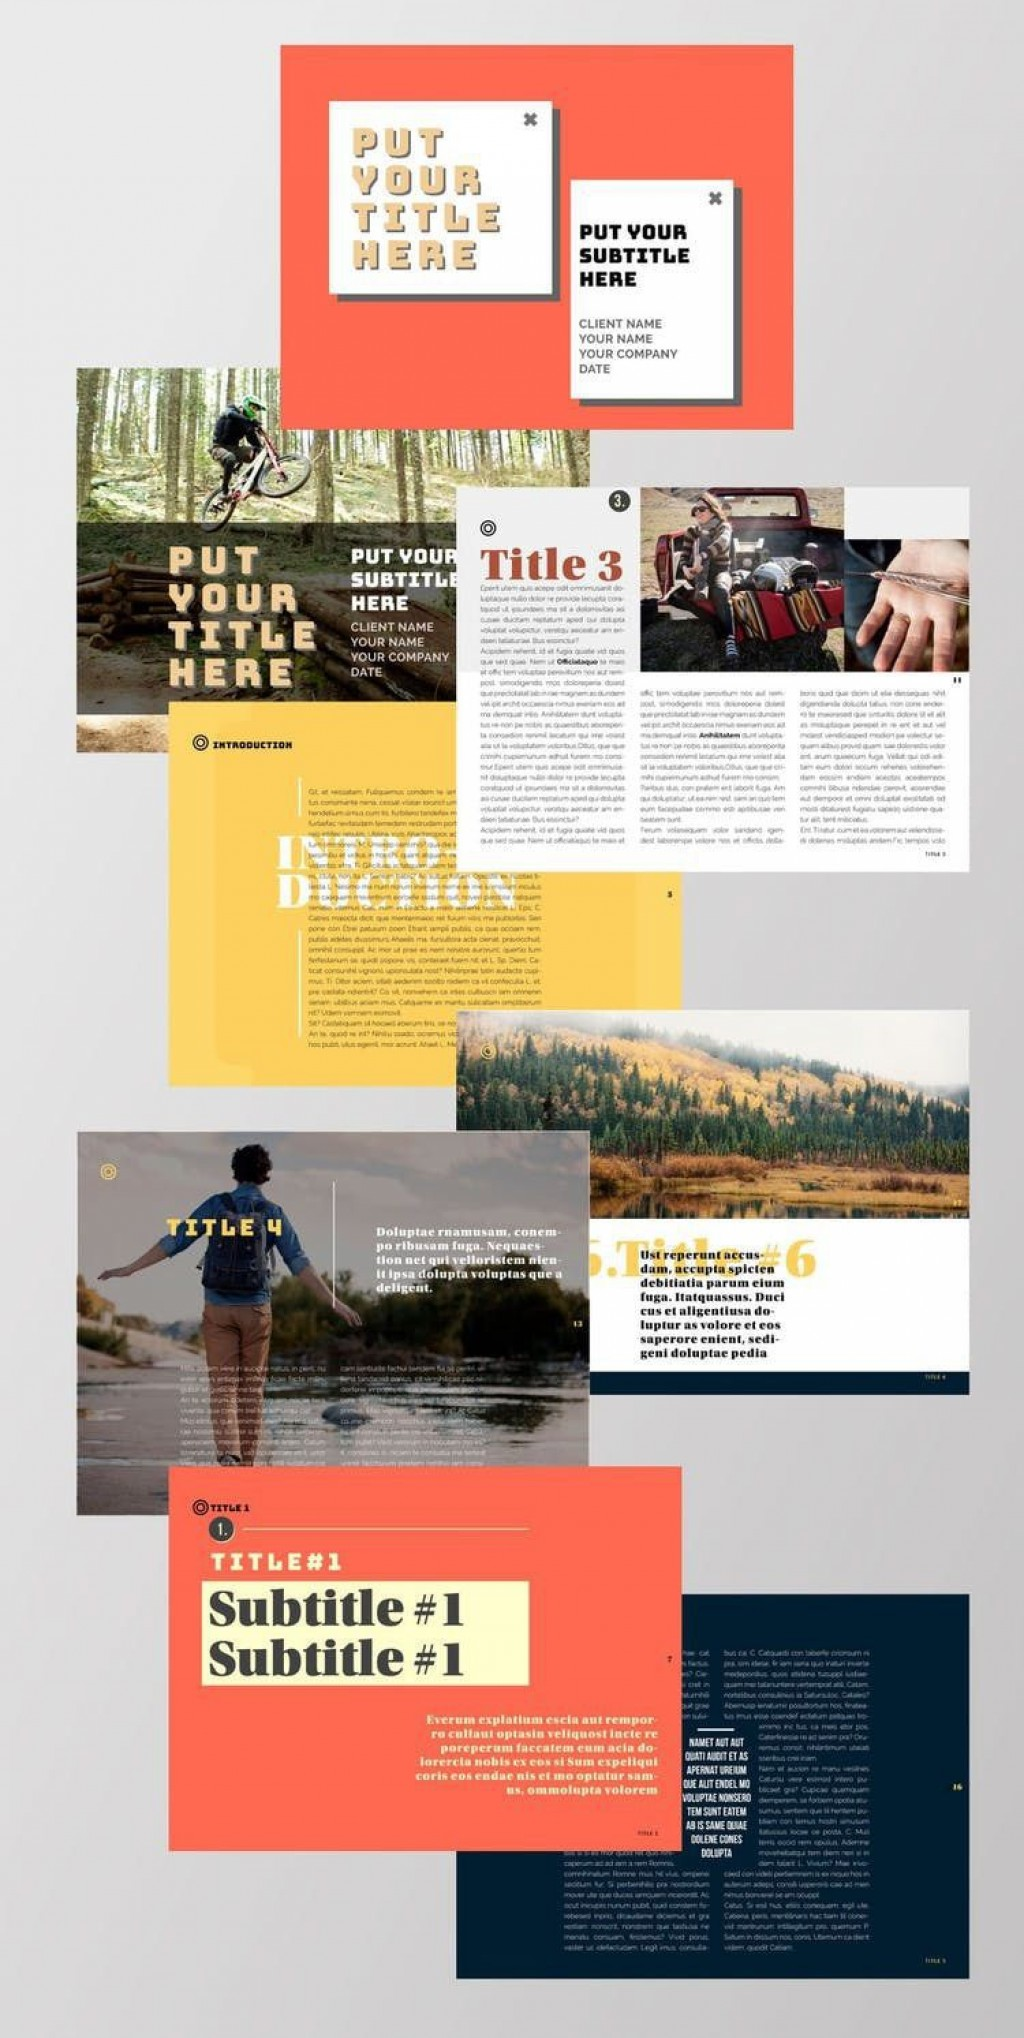 005 Magnificent School Magazine Layout Template Free Download Concept Large